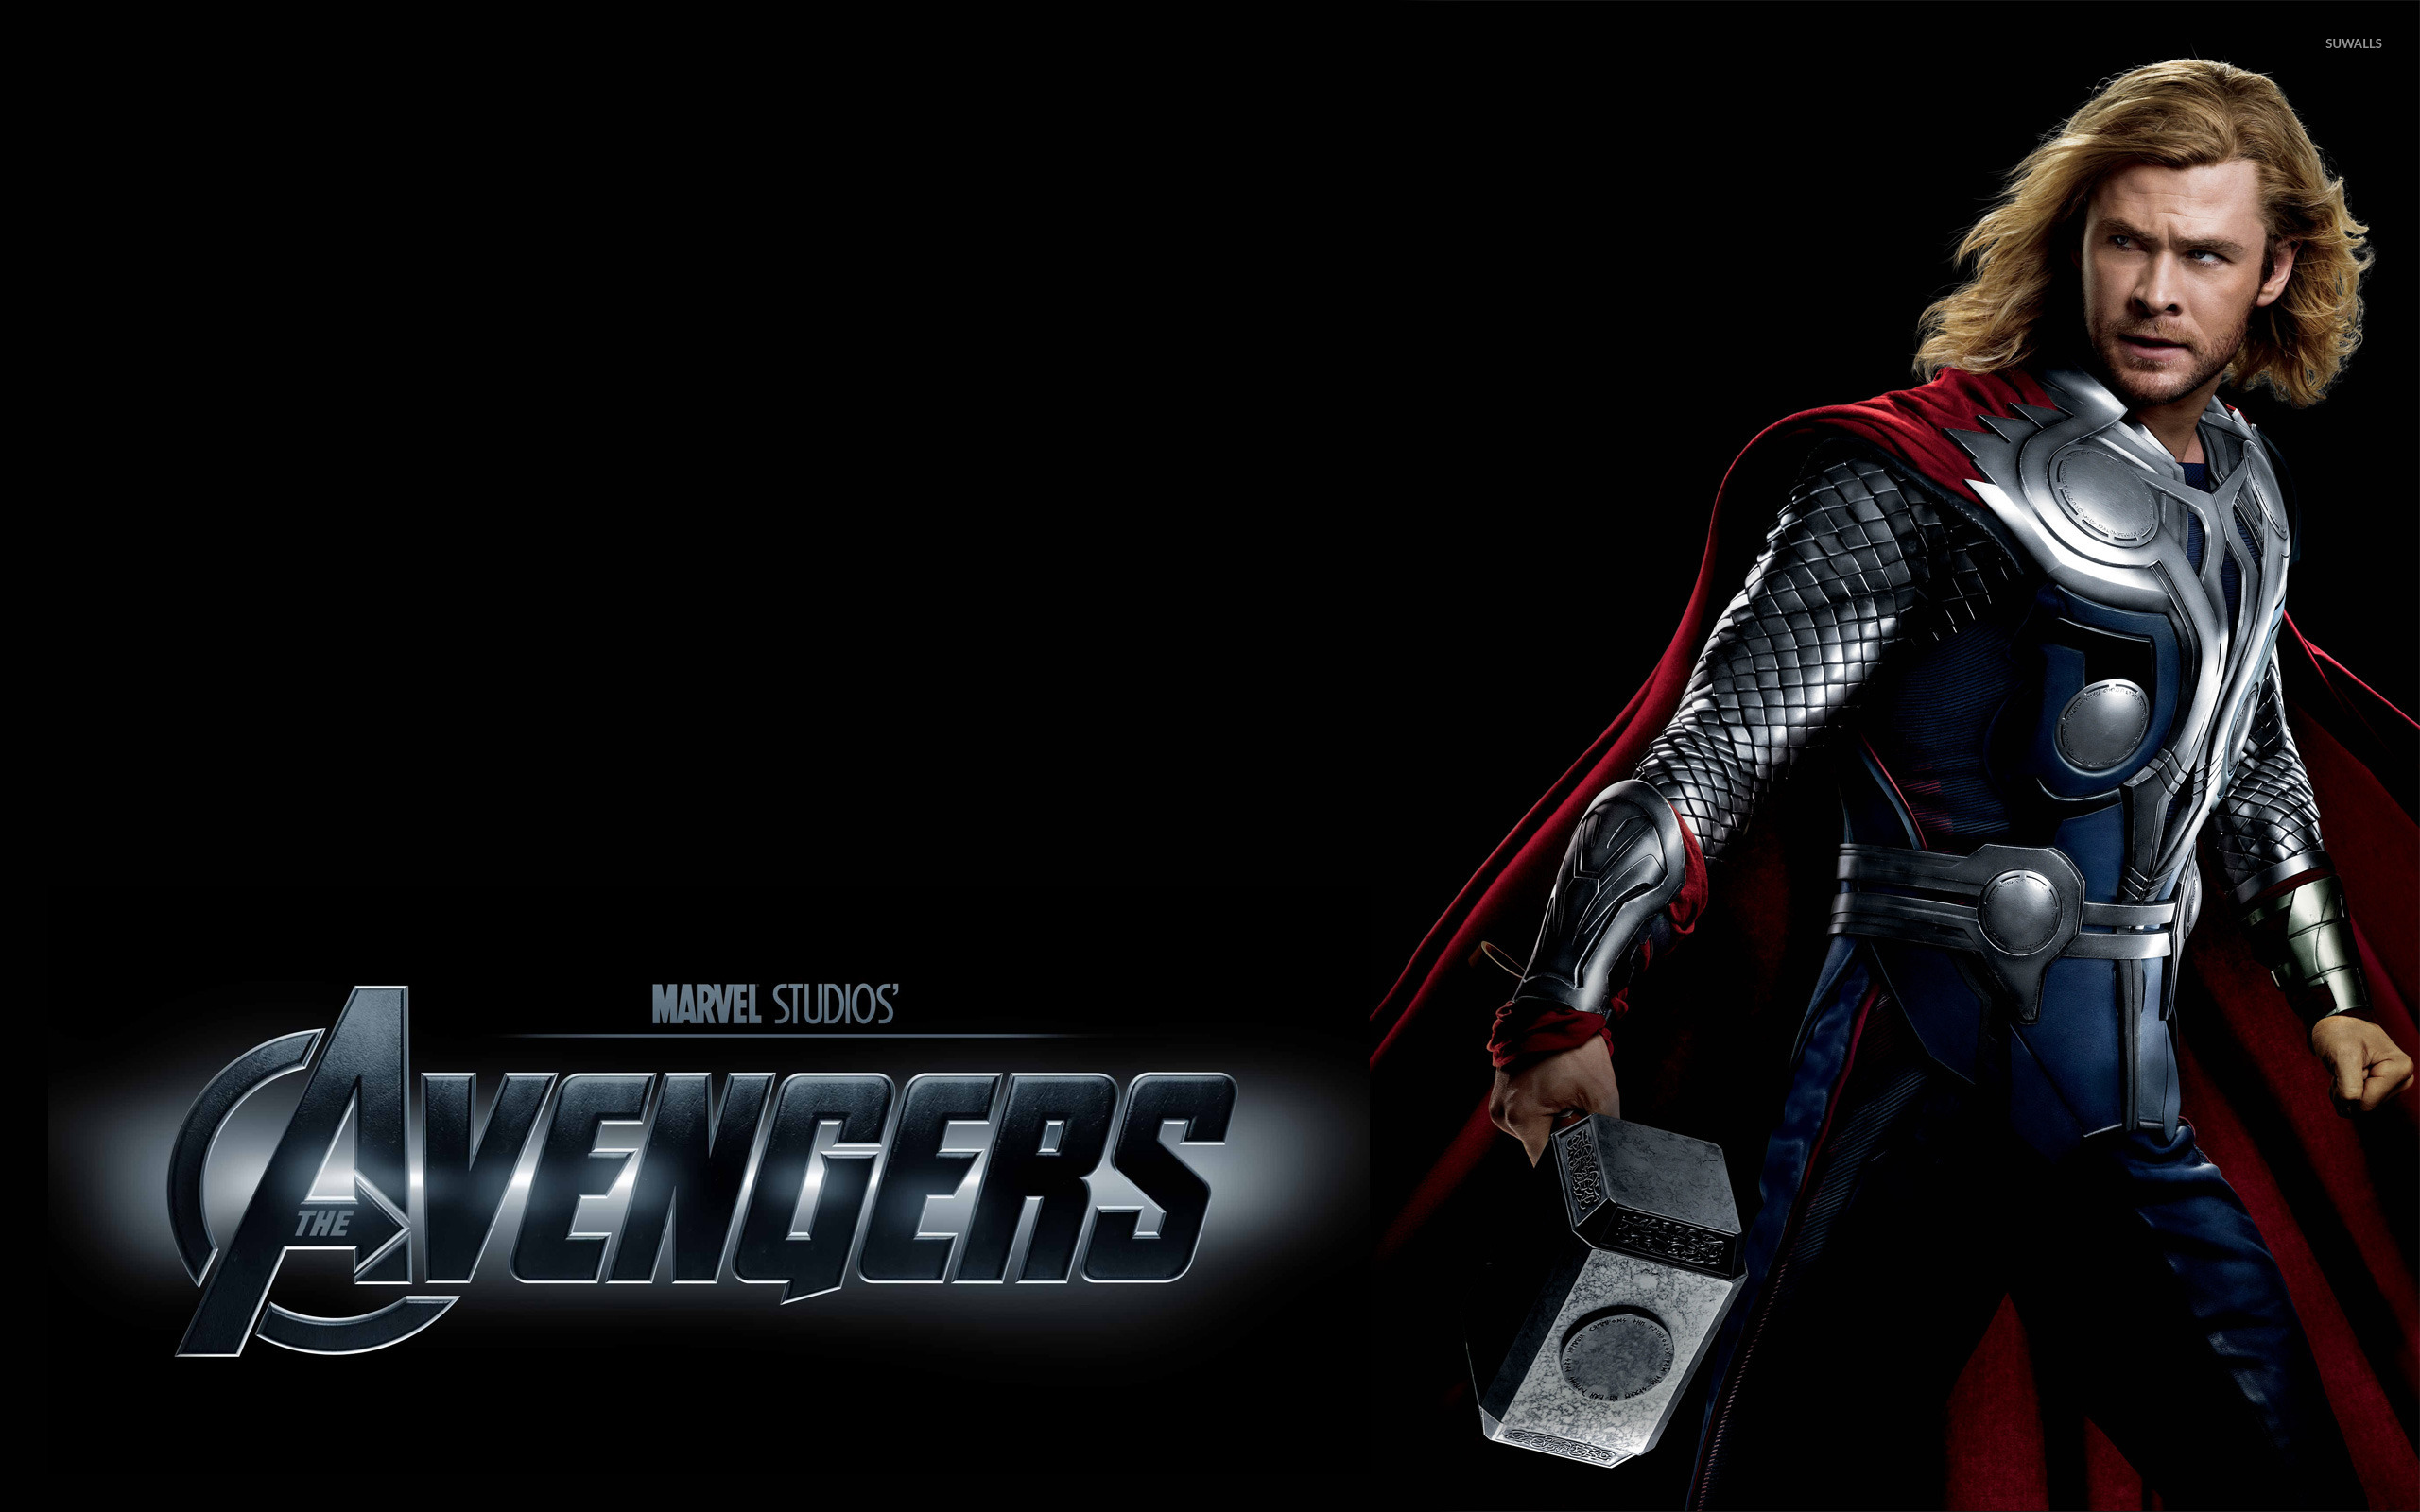 Thor The Avengers Wallpaper Movie Wallpapers 10938